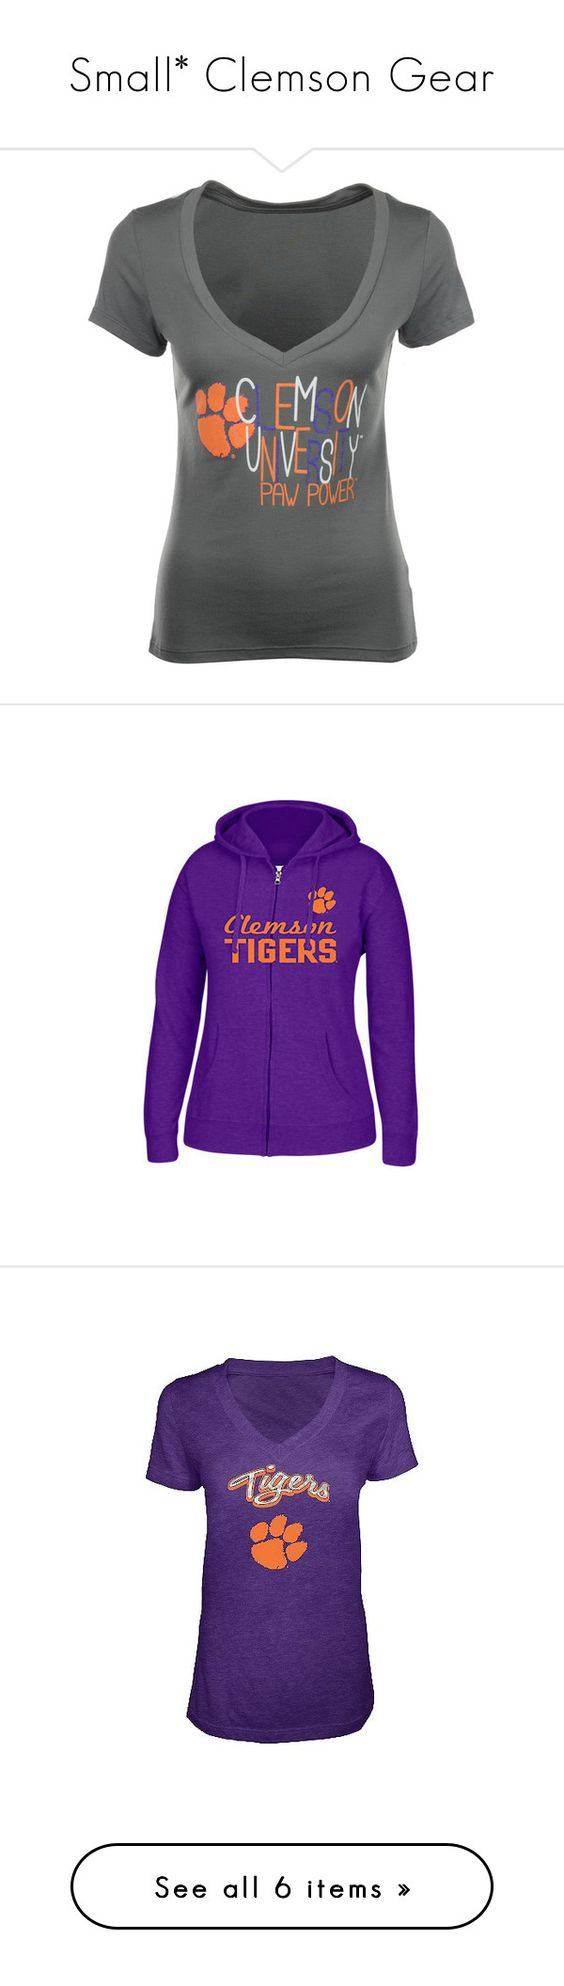 """""""Small* Clemson Gear"""" by lifeofmacy ❤ liked on Polyvore featuring charcoal, tops, hoodies, purple, sweatshirt hoodies, purple hoodie, j america hoodies, purple hoodies, hooded pullover and black"""